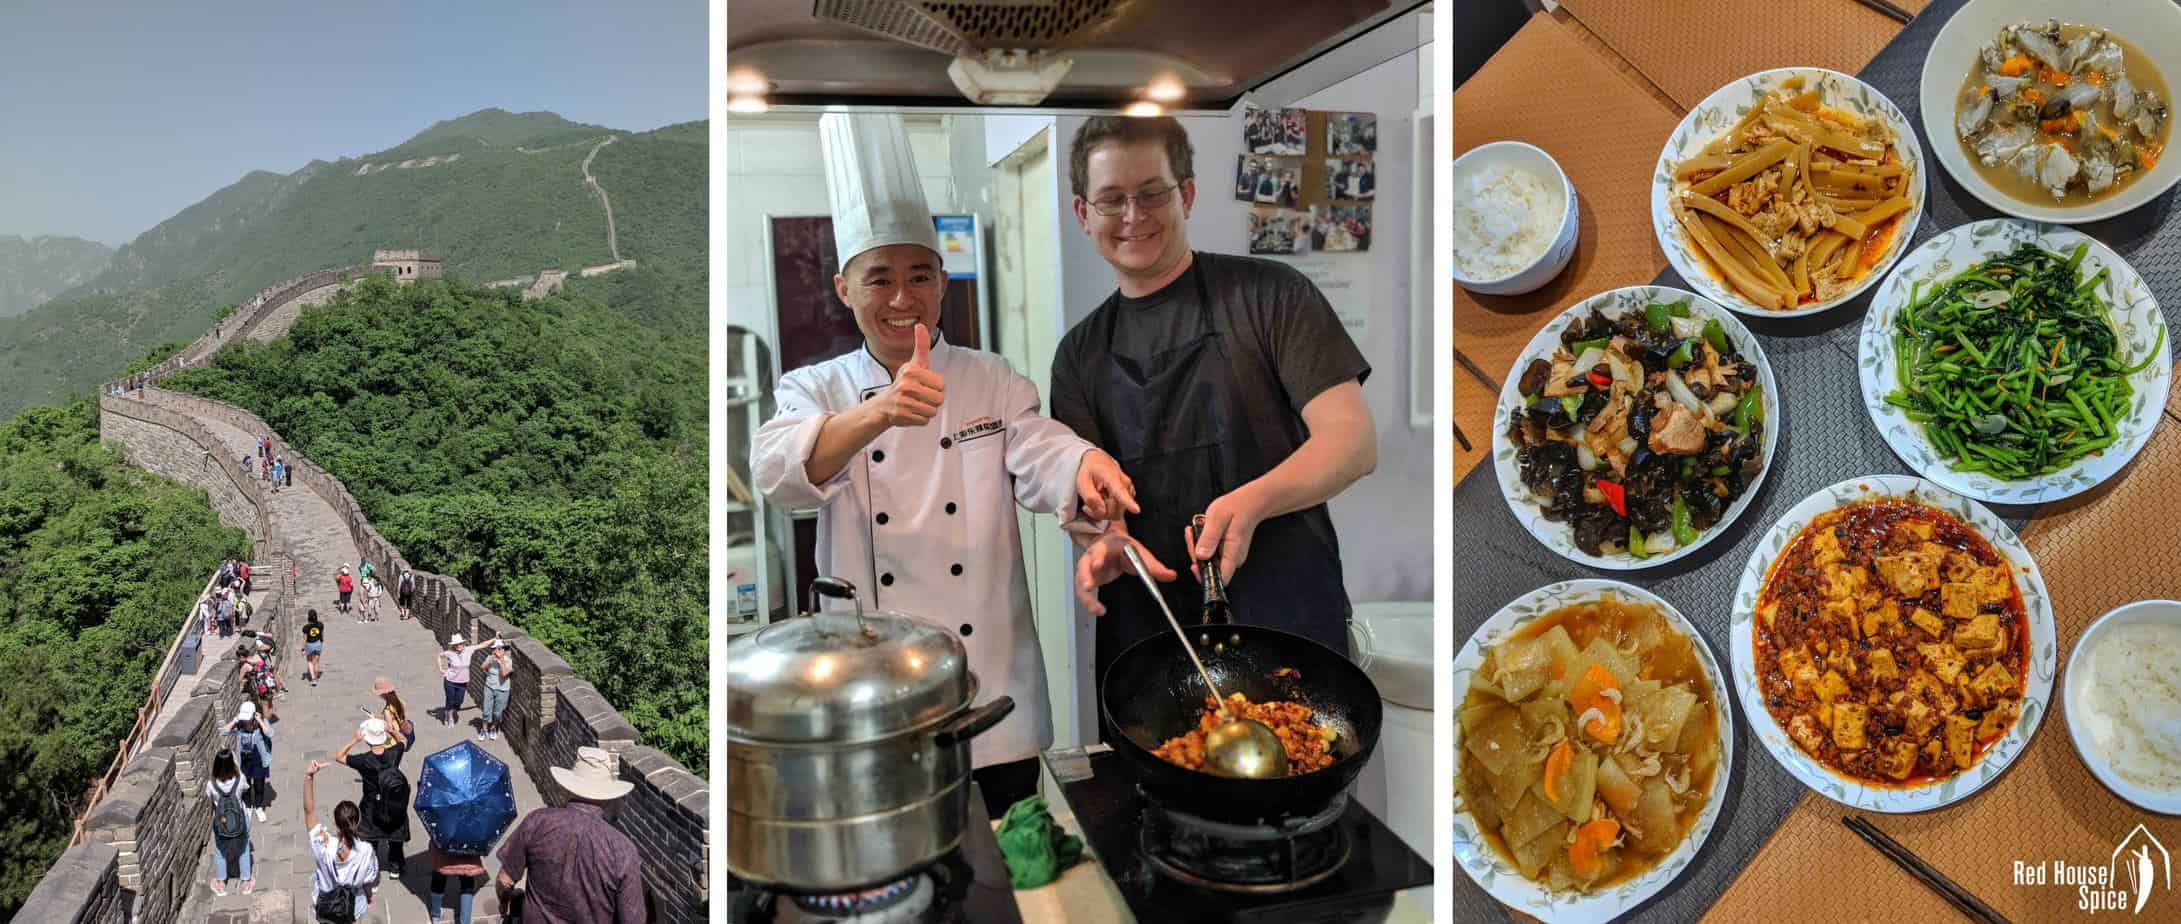 A fourteen dayculinary tour of China, with anenthusiastic native Chinese food blogger, exploringsome of China's most diverse gastronomic traditions andculture.